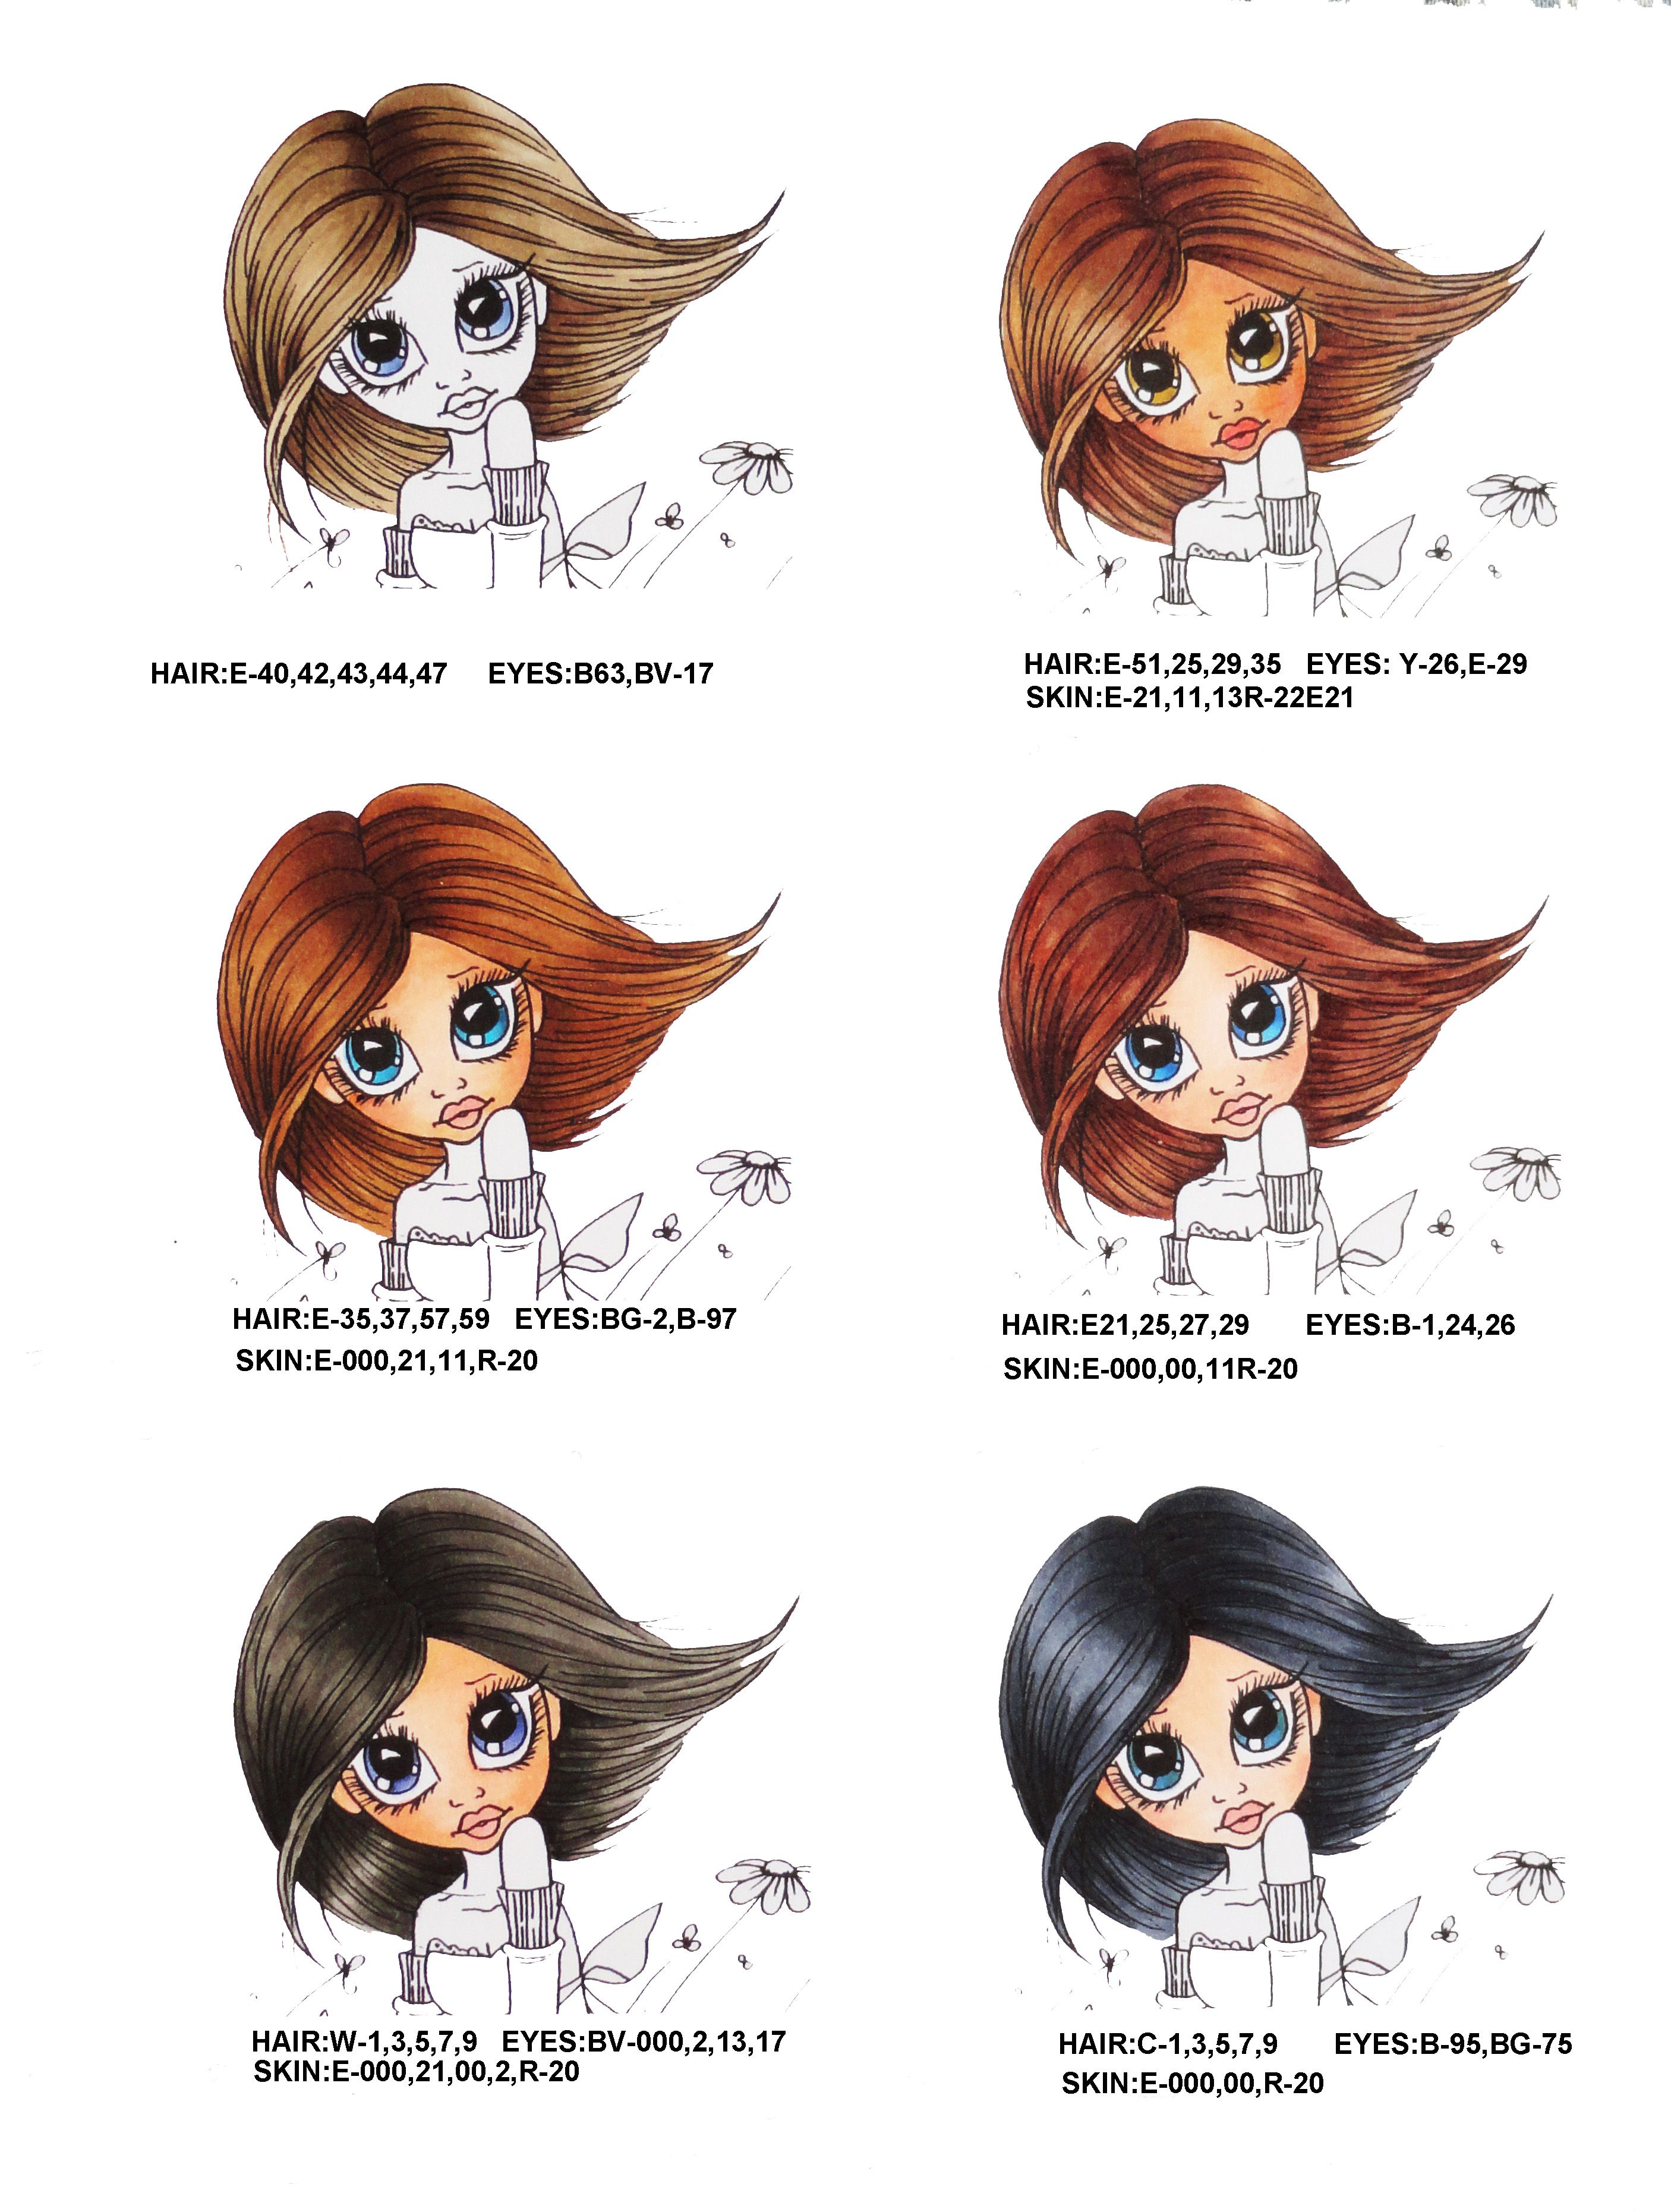 Hair And Skin Colors Using Copic Markers Here Are A Few